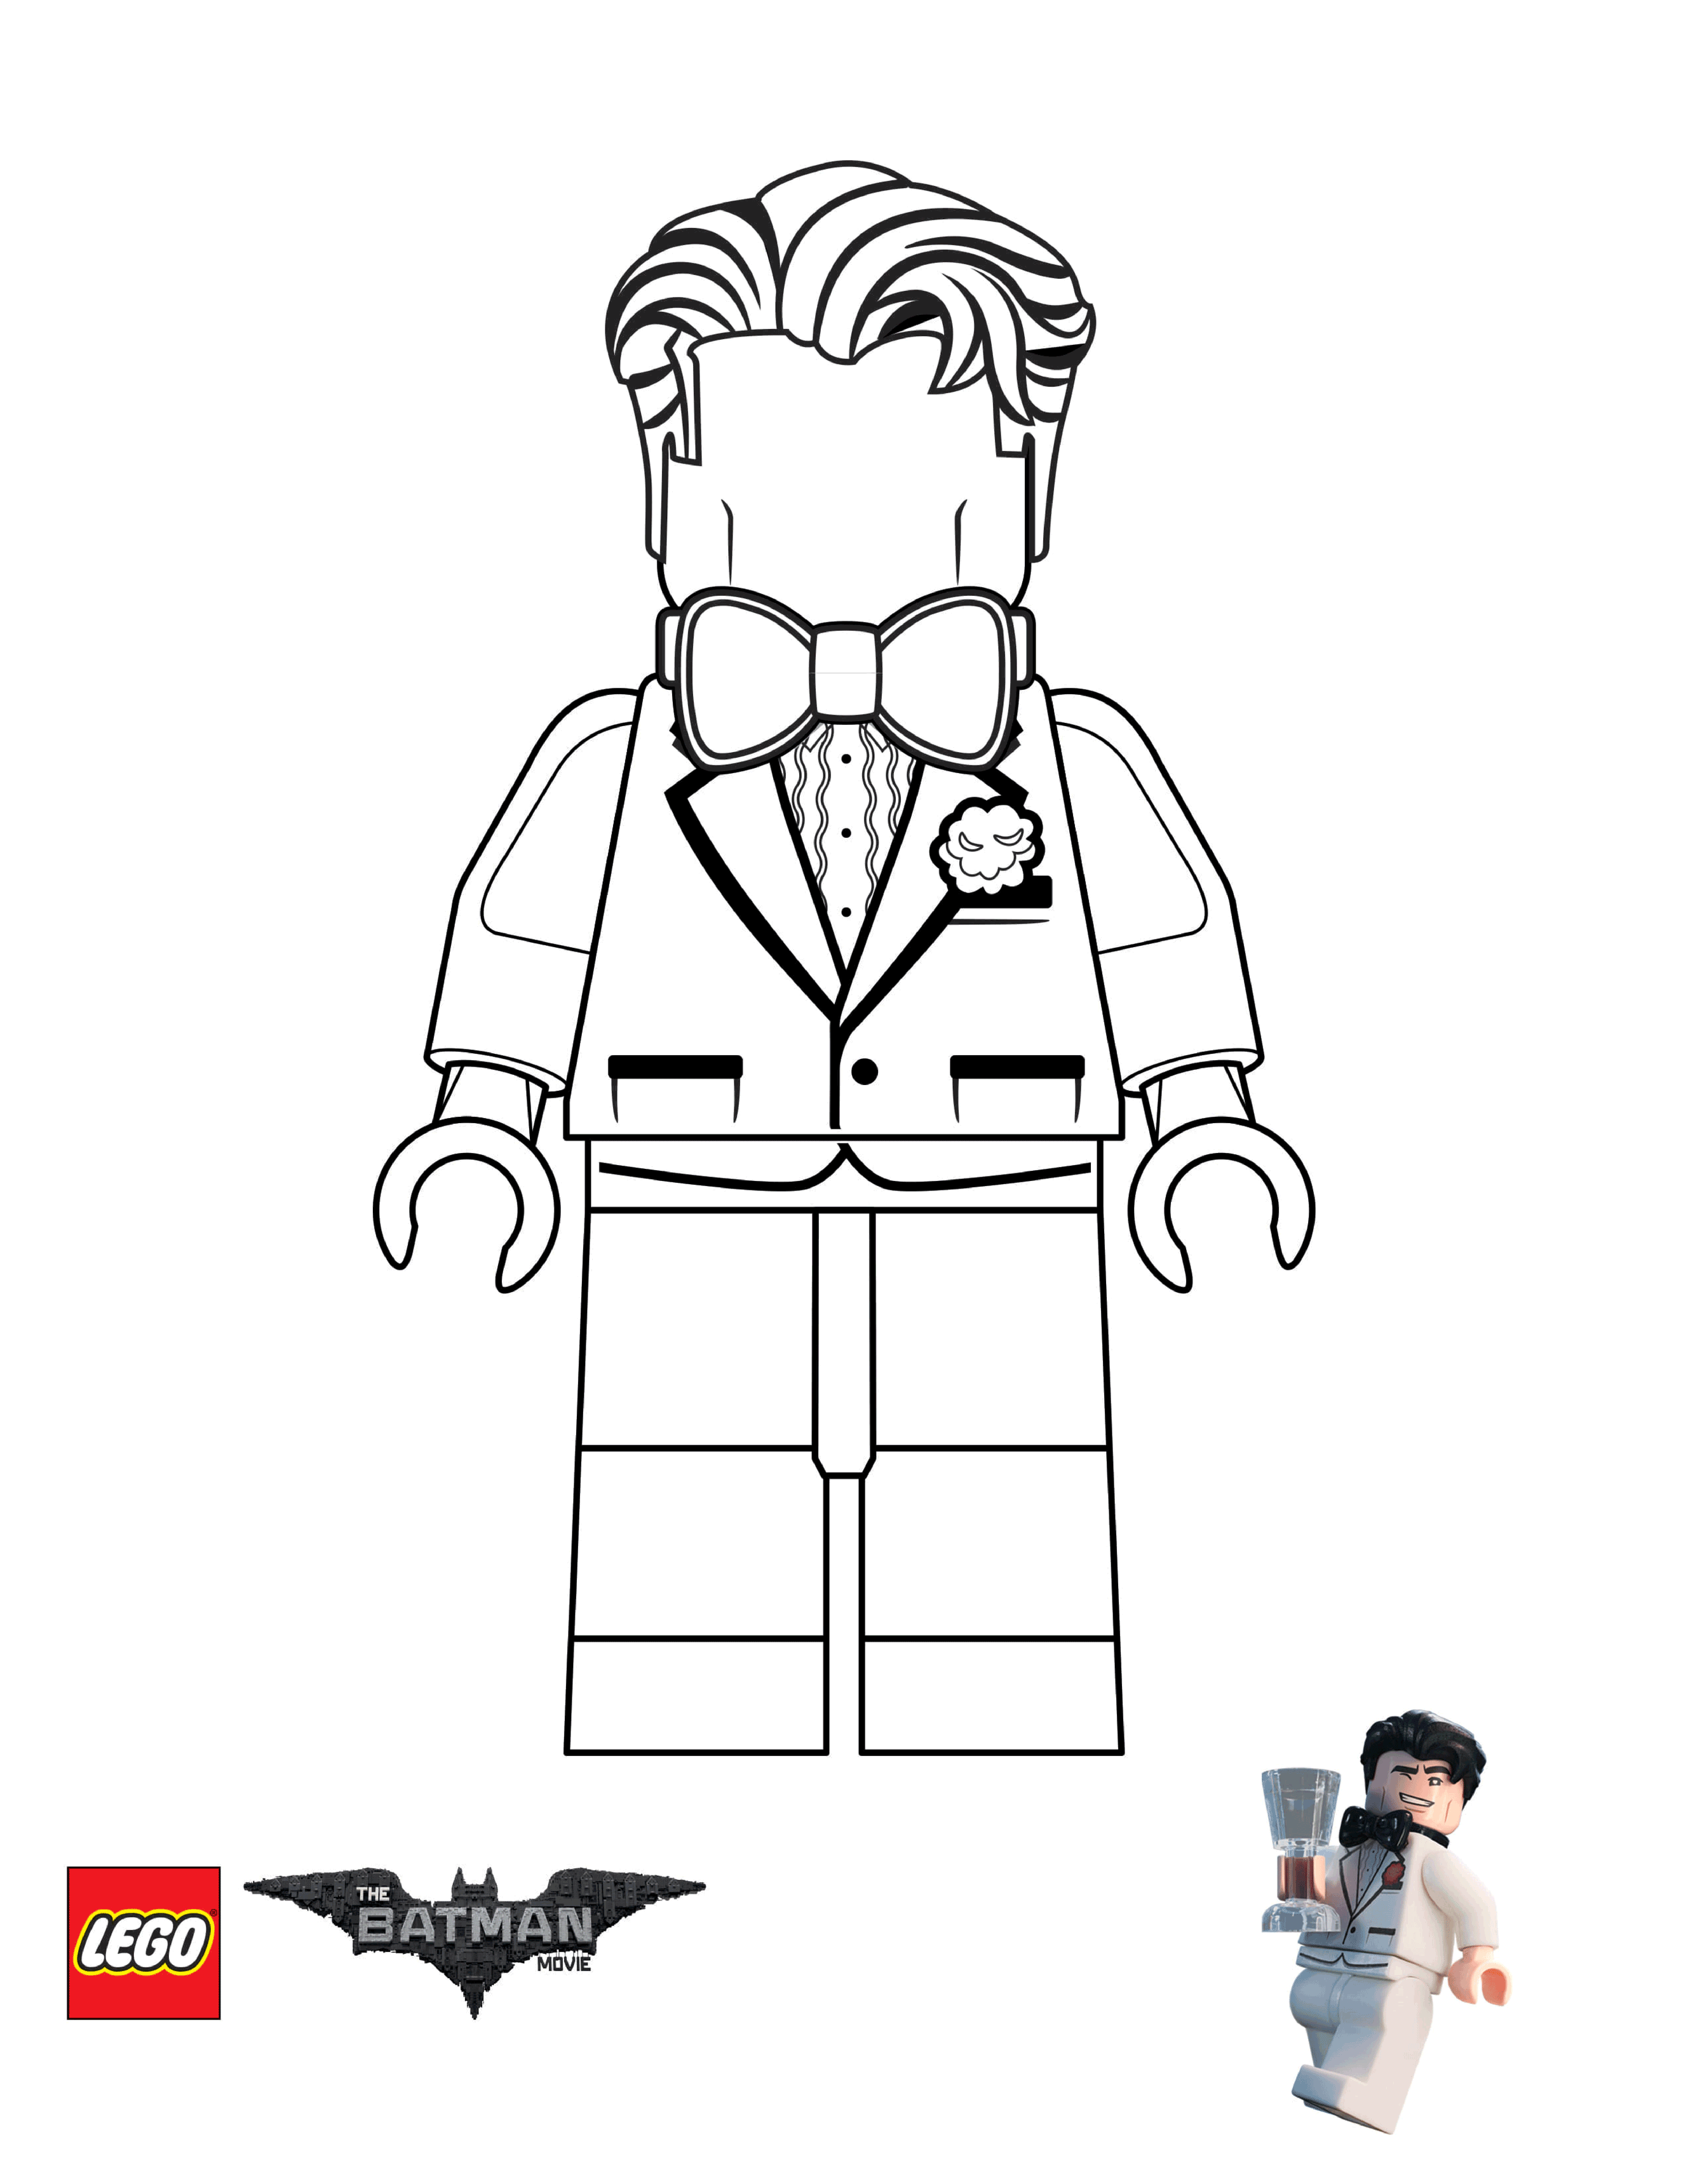 Lego Movie Coloring Pages - Coloring Home | 3438x2657